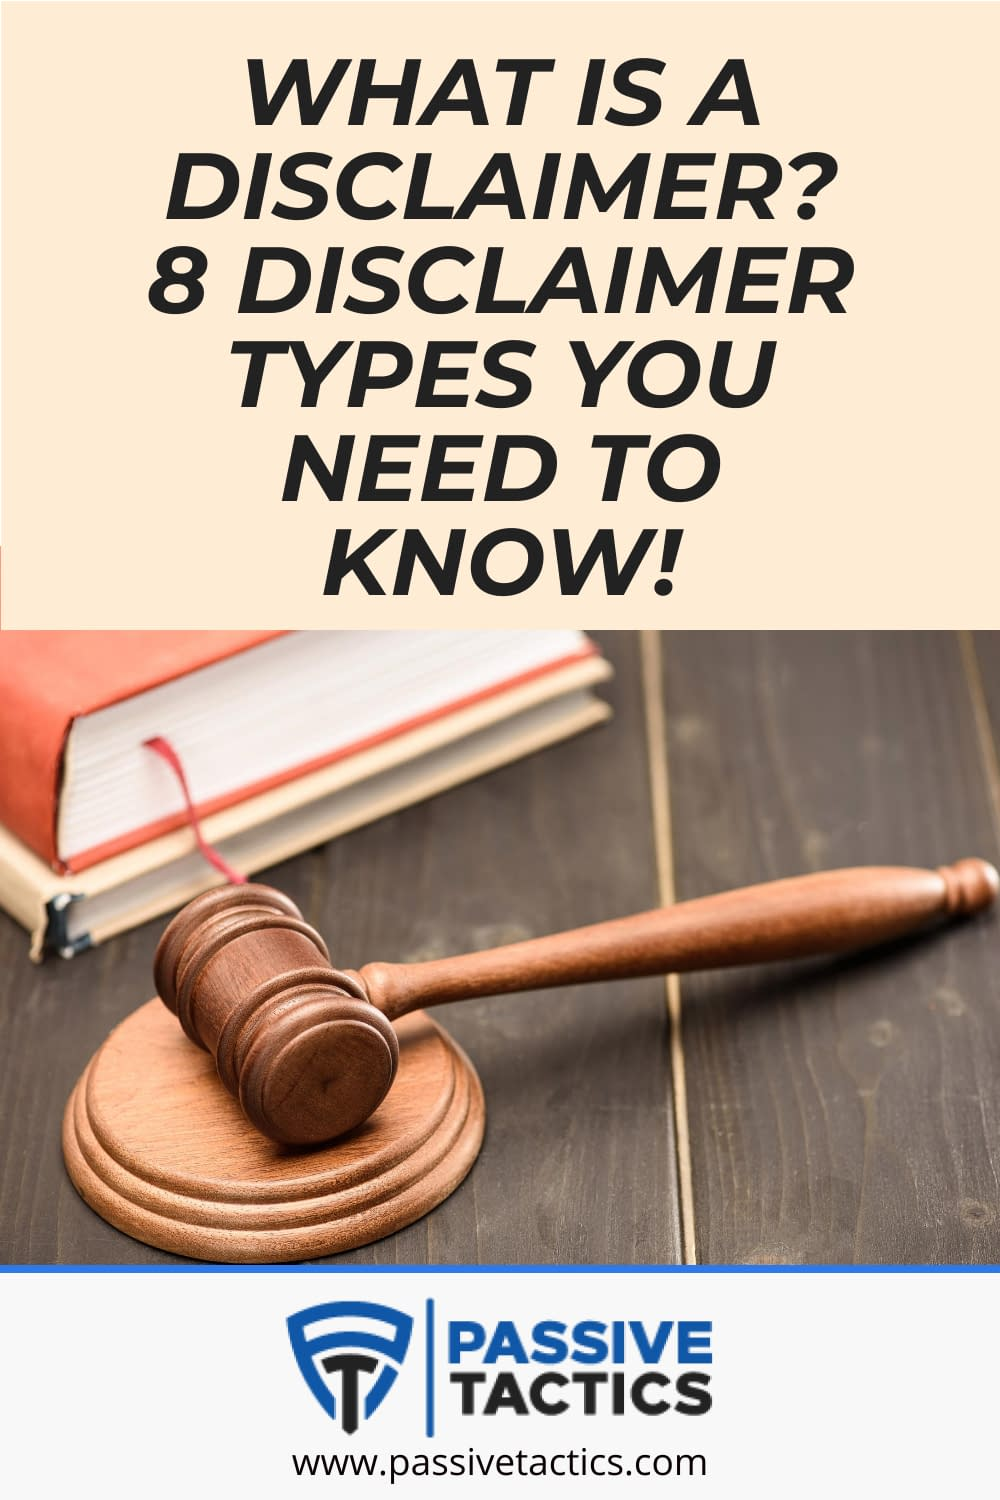 What Is A Disclaimer? 8 Types You Need To Know!